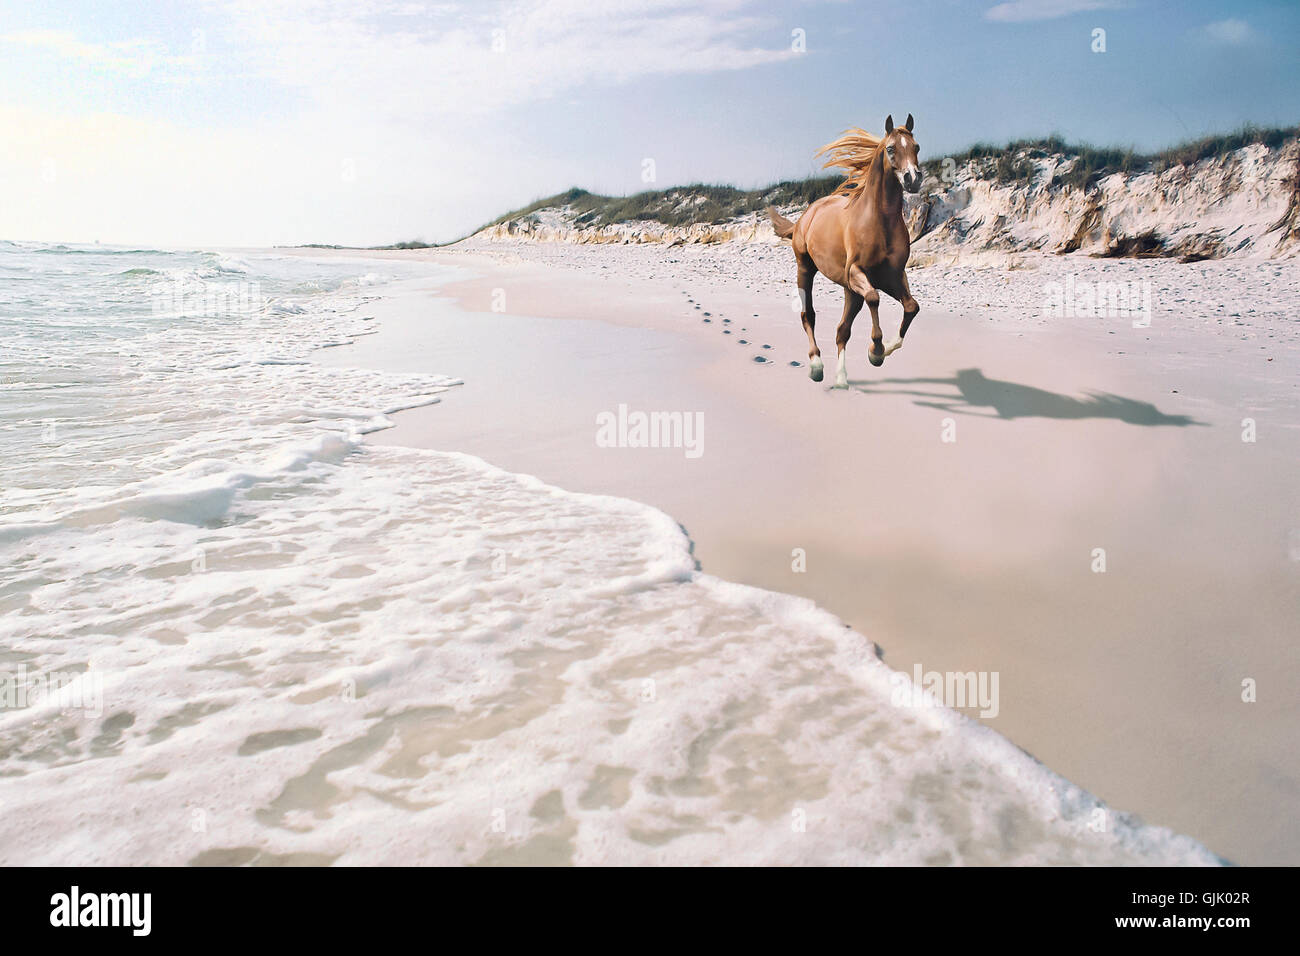 Arabian stallion gallops along beach shore.  Tough, beautiful, intelligent and spirited, the Arabian bloodline has - Stock Image